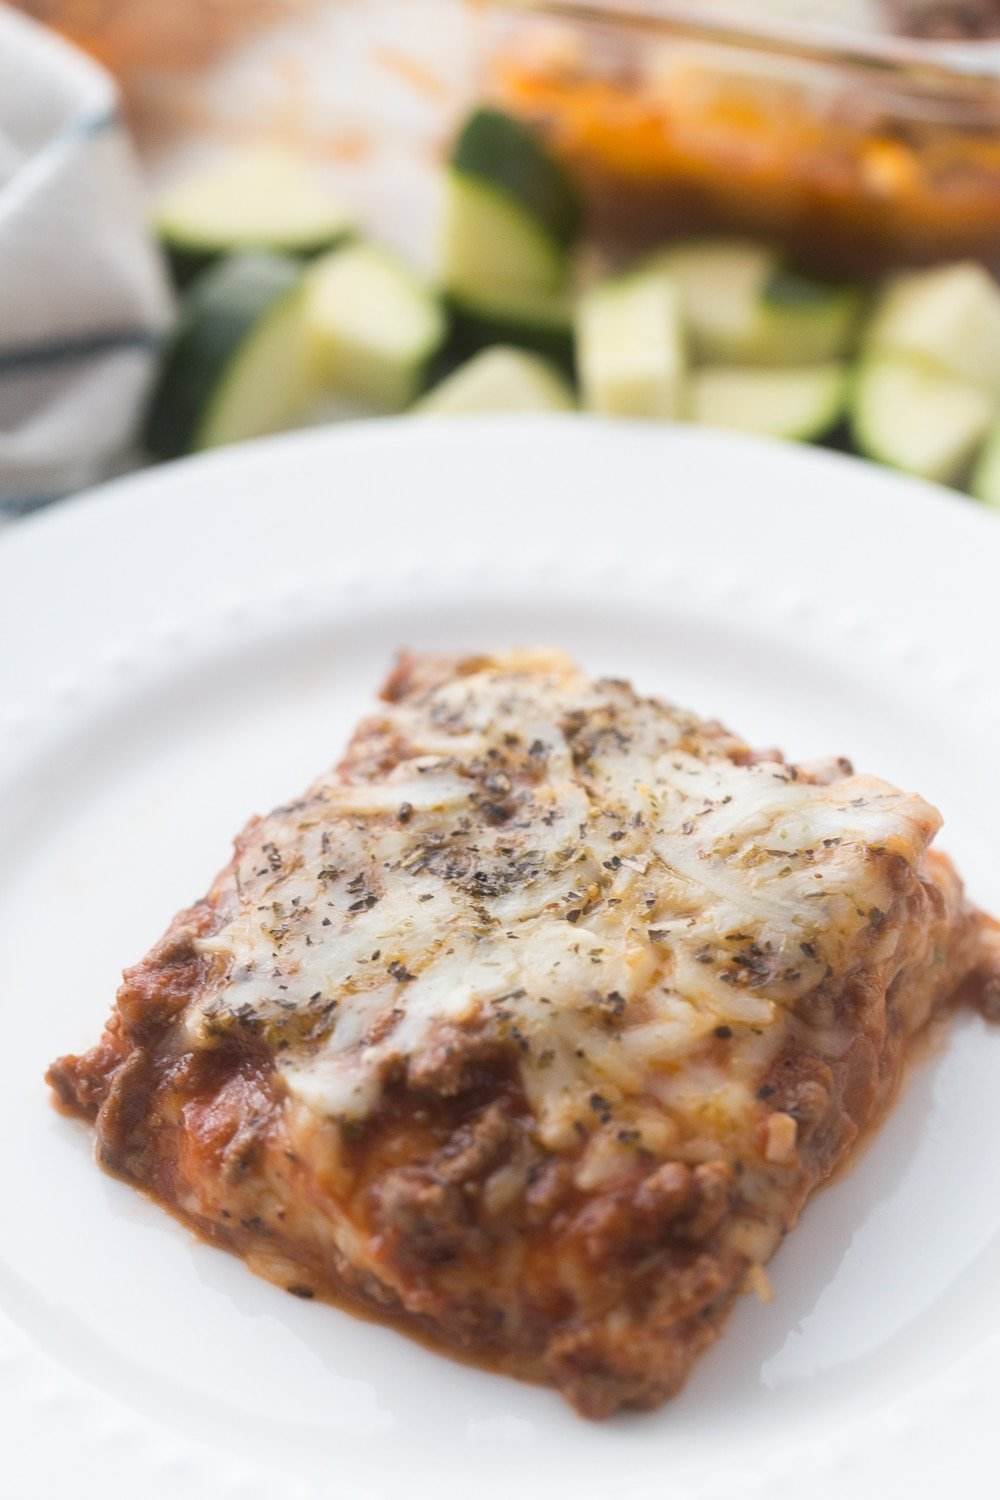 This Keto Zucchini Lasagna recipe is the perfect way to enjoy that lasagna taste without the noodles, which add too many carbs for those of us following a keto lifestyle! It is simple to make as well as delicious, and healthy!